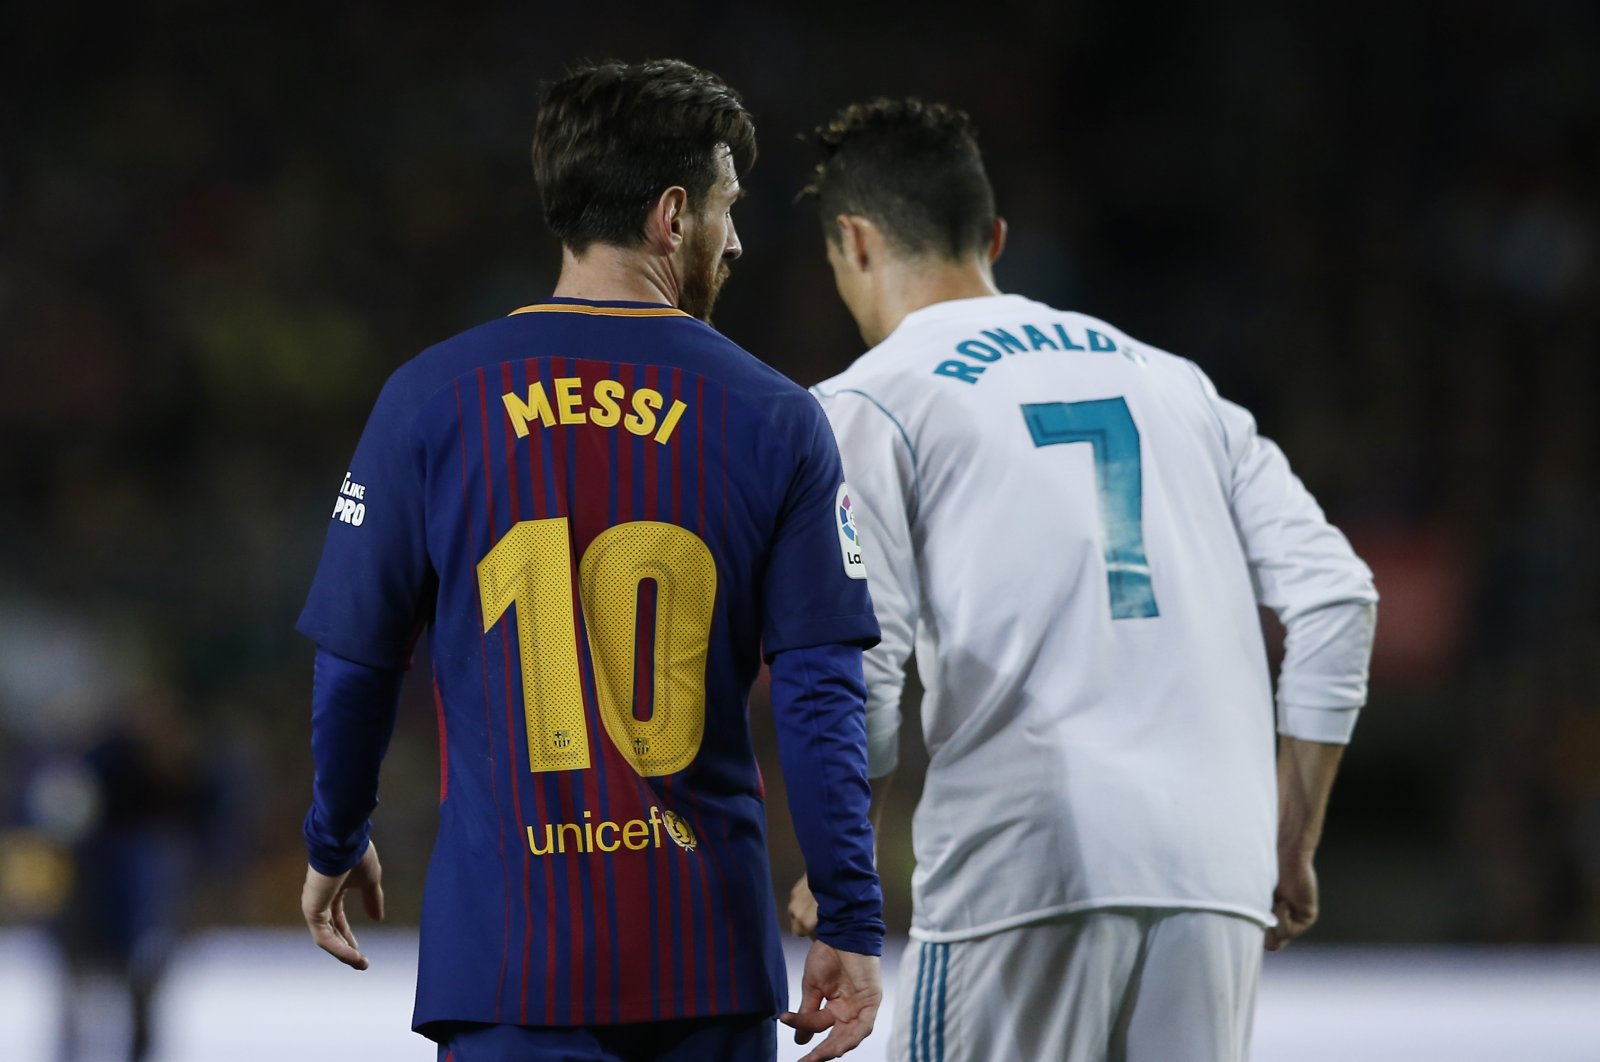 Lionel Messi and Cristiano Ronaldo during a La Liga match between Barcelona and Real Madrid, in Barcelona, Spain, May 6, 2018. (AP Photo)